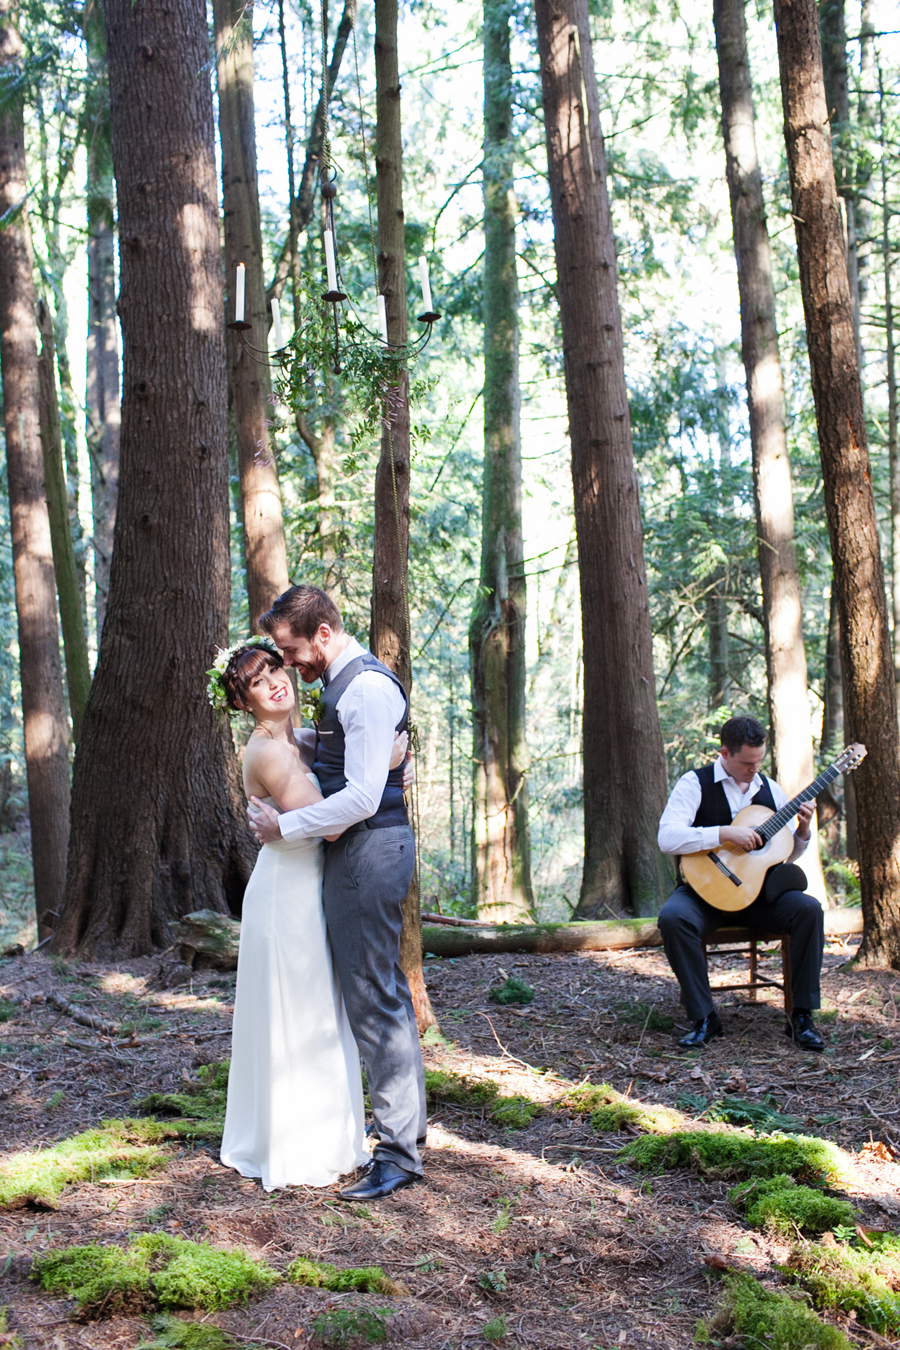 028-pacific-northwest-woodland-bridal-styled-session-lynden-washington-katheryn-moran-photography.jpg